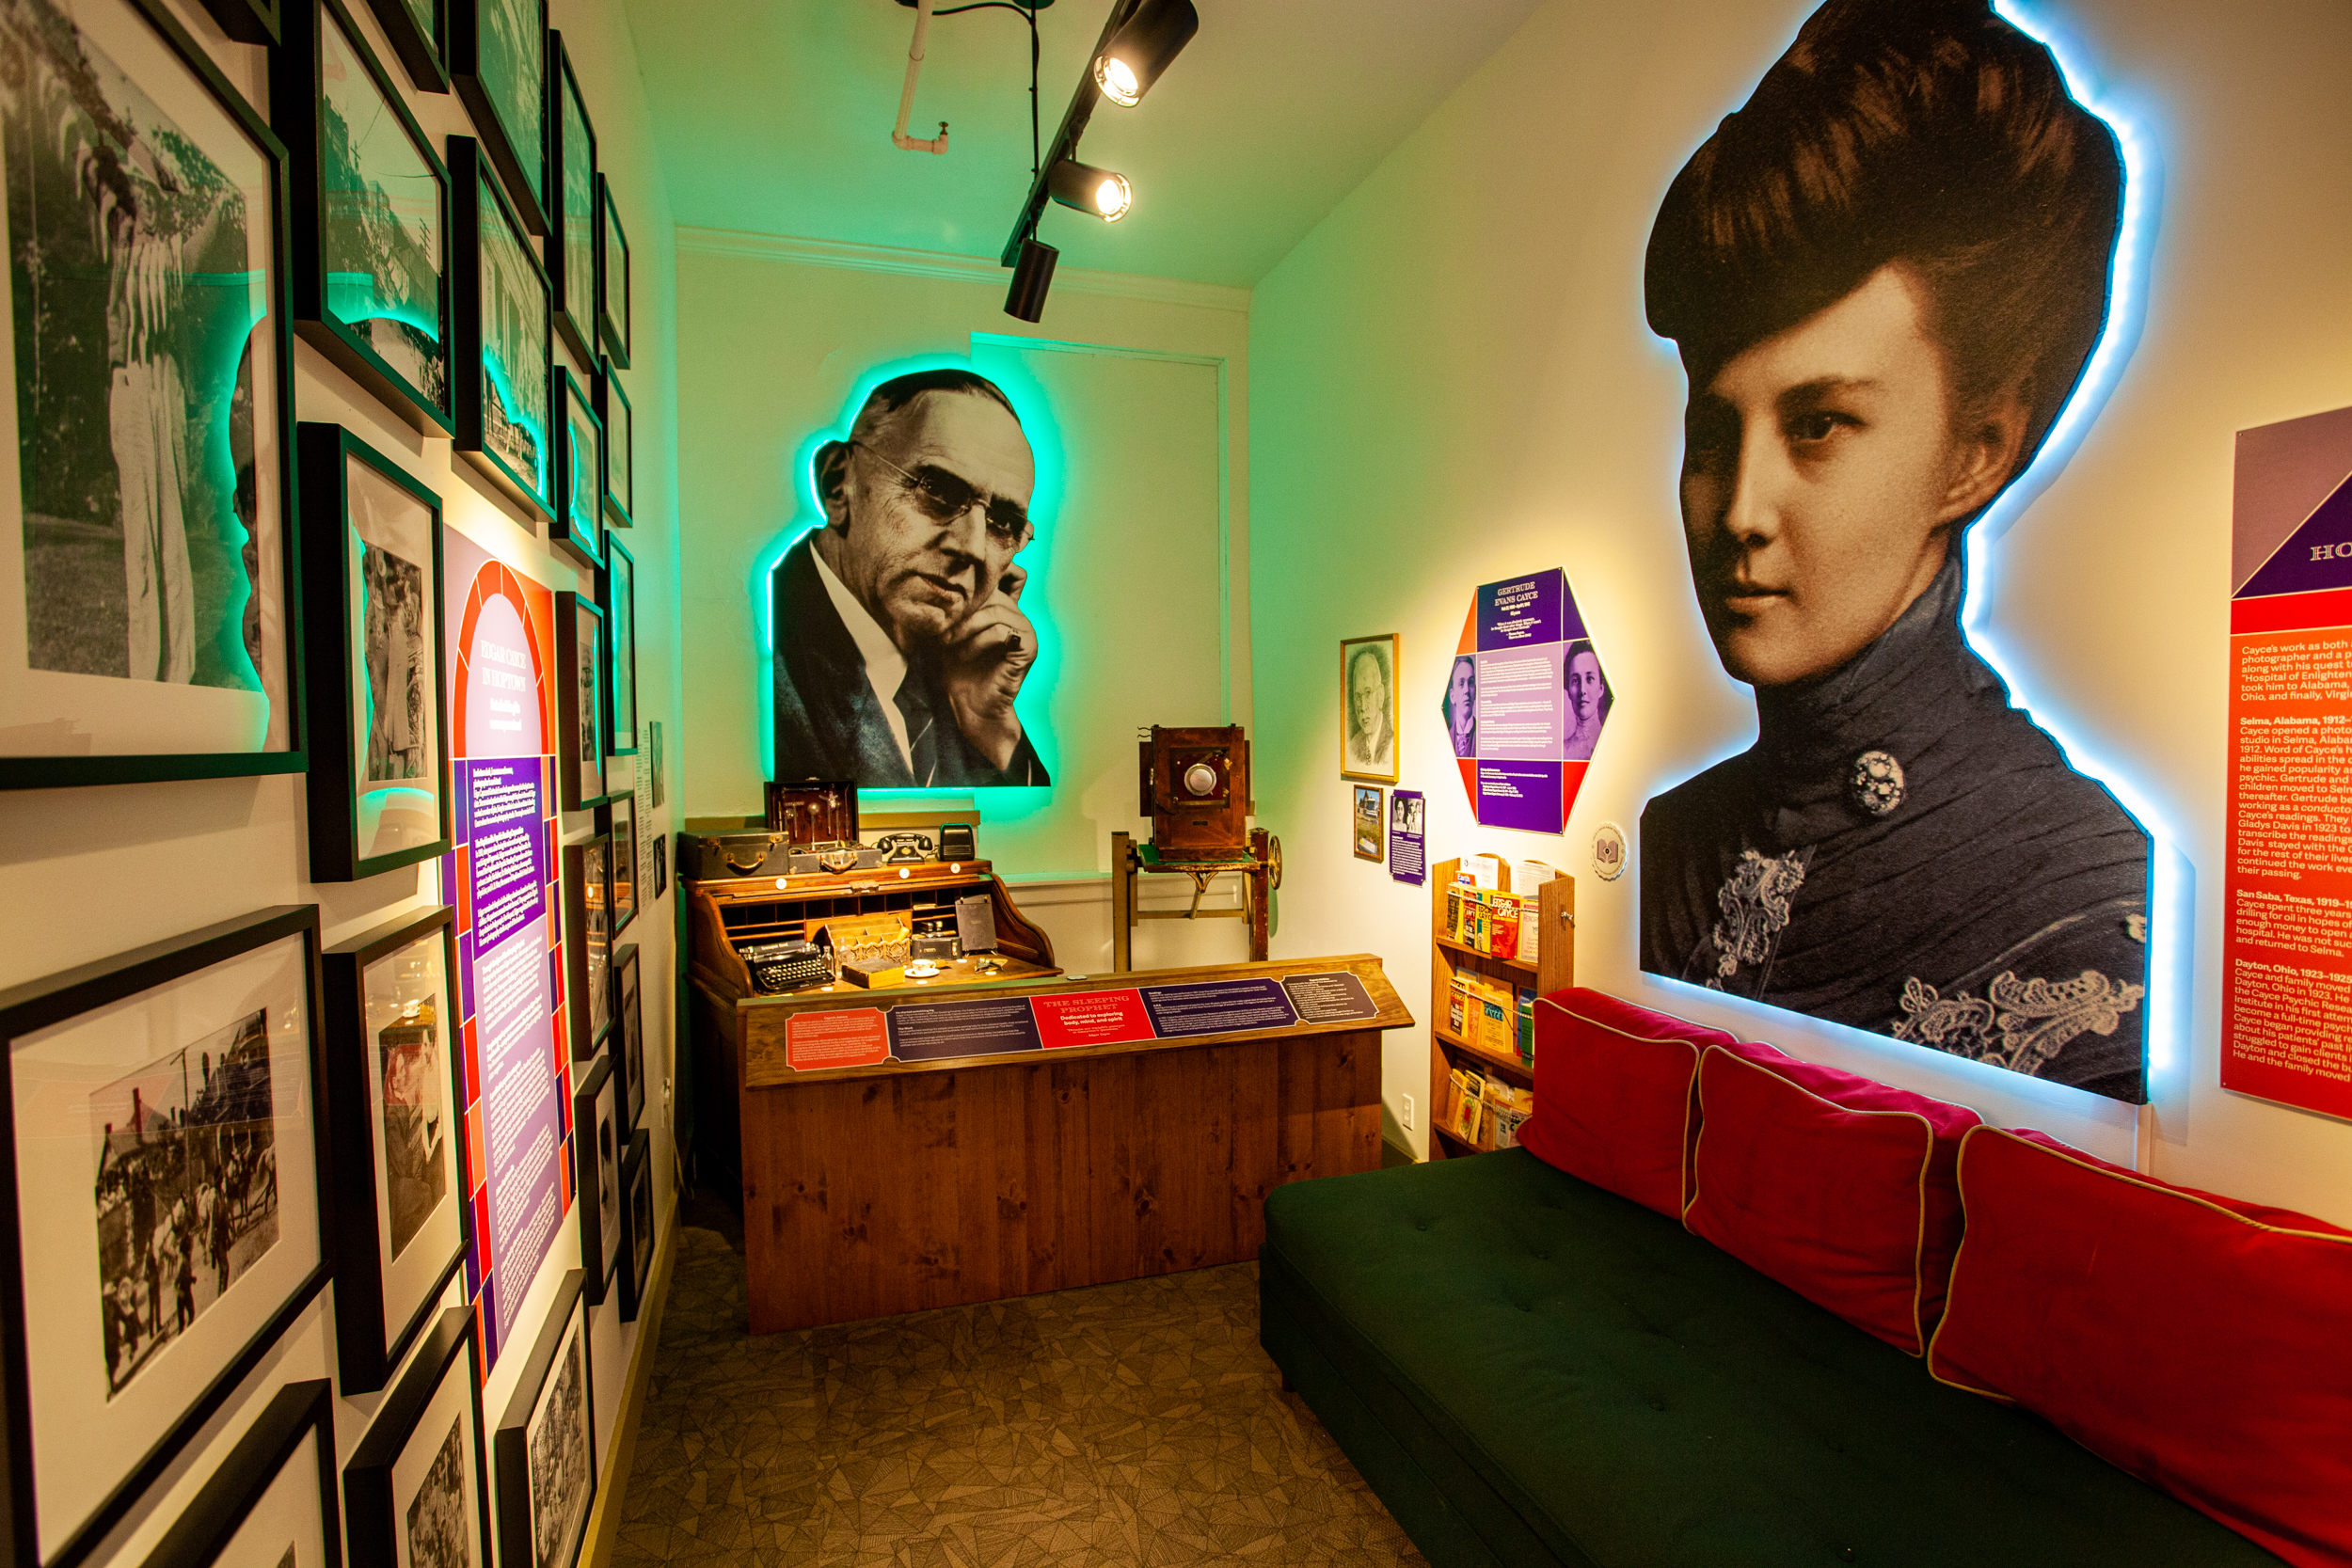 The Edgar Cayce corridor at the Pennyroyal Area Musuem highlights Cayce's journey as a psychic growing up and living in and around Hopkinsville, Kentucky.